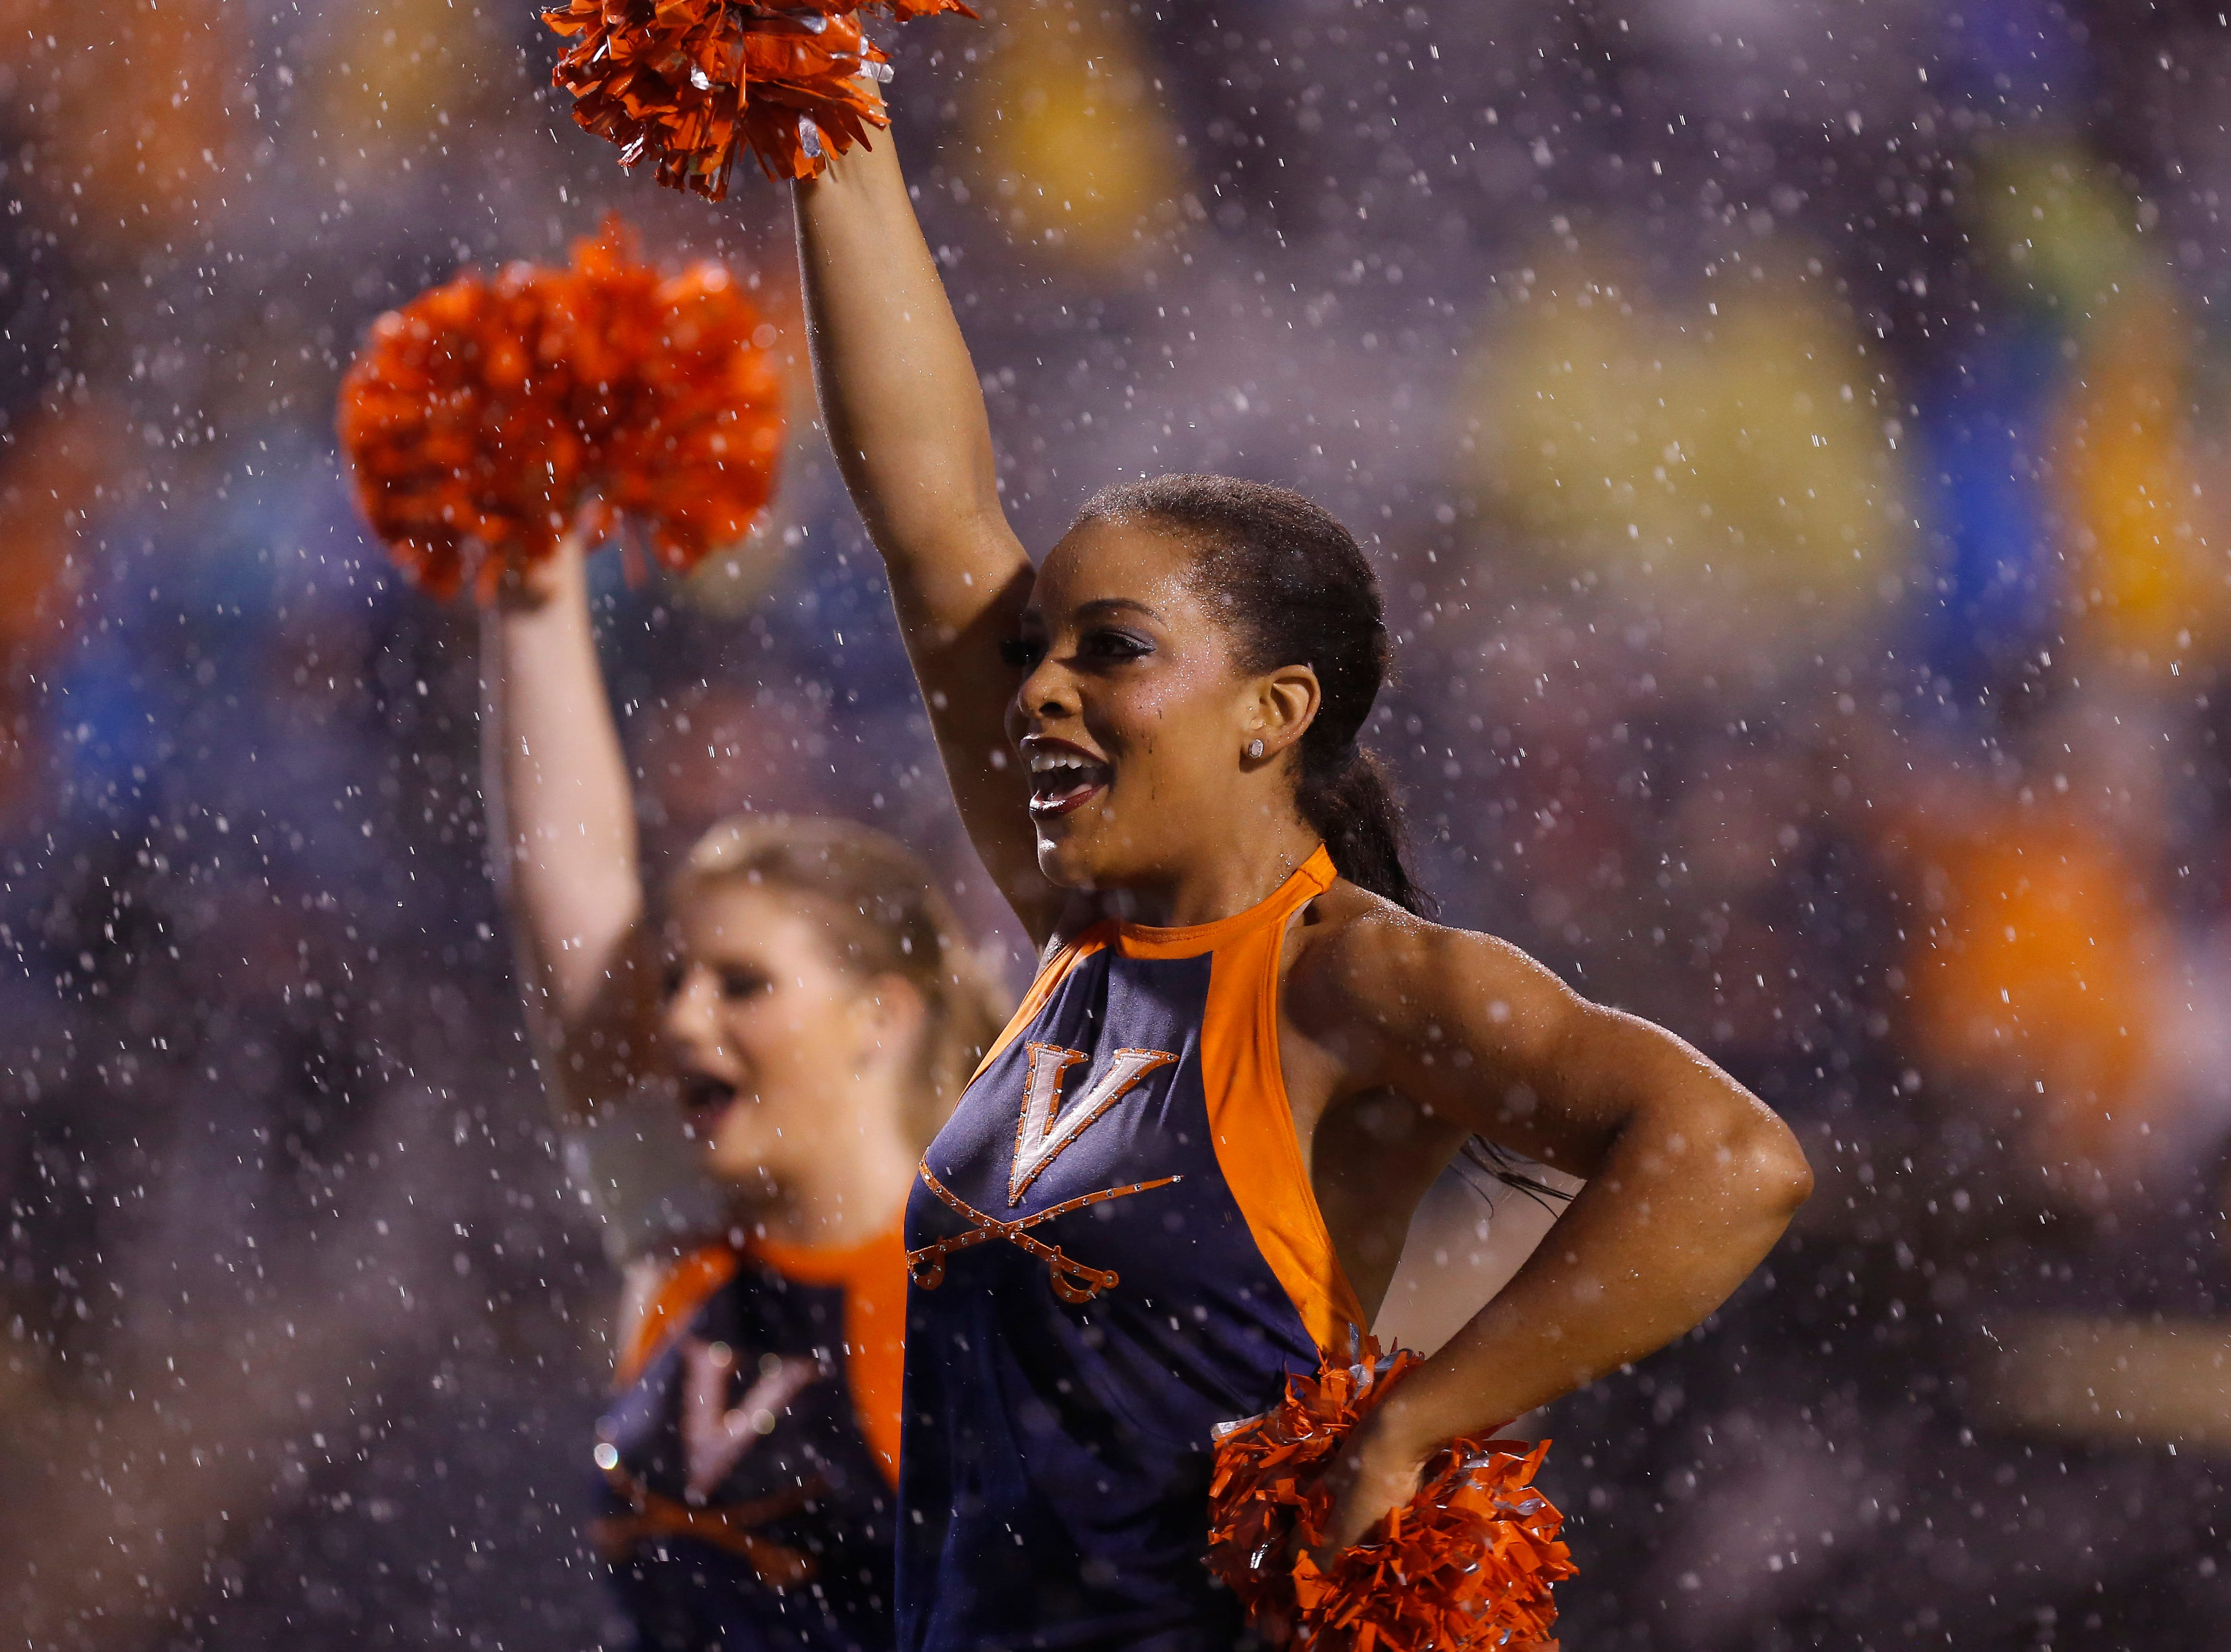 Week 10: Members of the Virginia Cavaliers dance team perform on the field prior to the Cavaliers' game against the Pittsburgh Panthers at Scott Stadium.